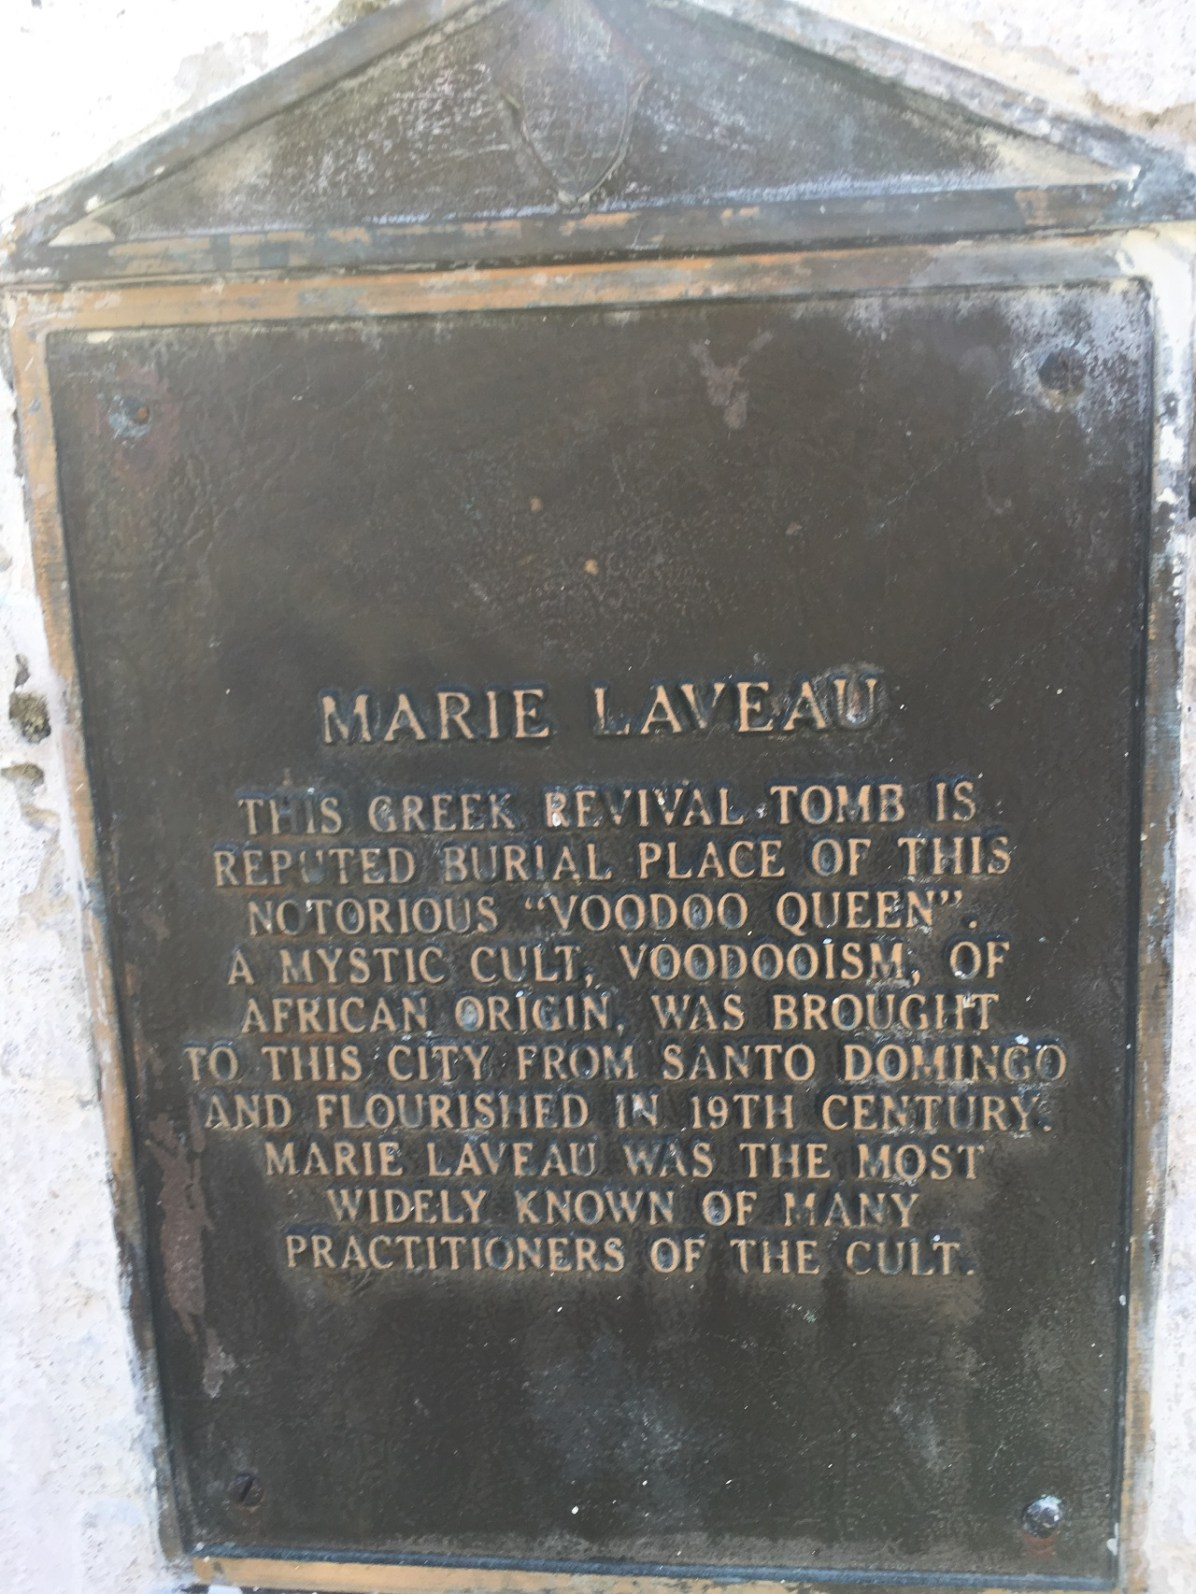 Marie LaVeau's tomb - One of the spooky things to do in New Orleans